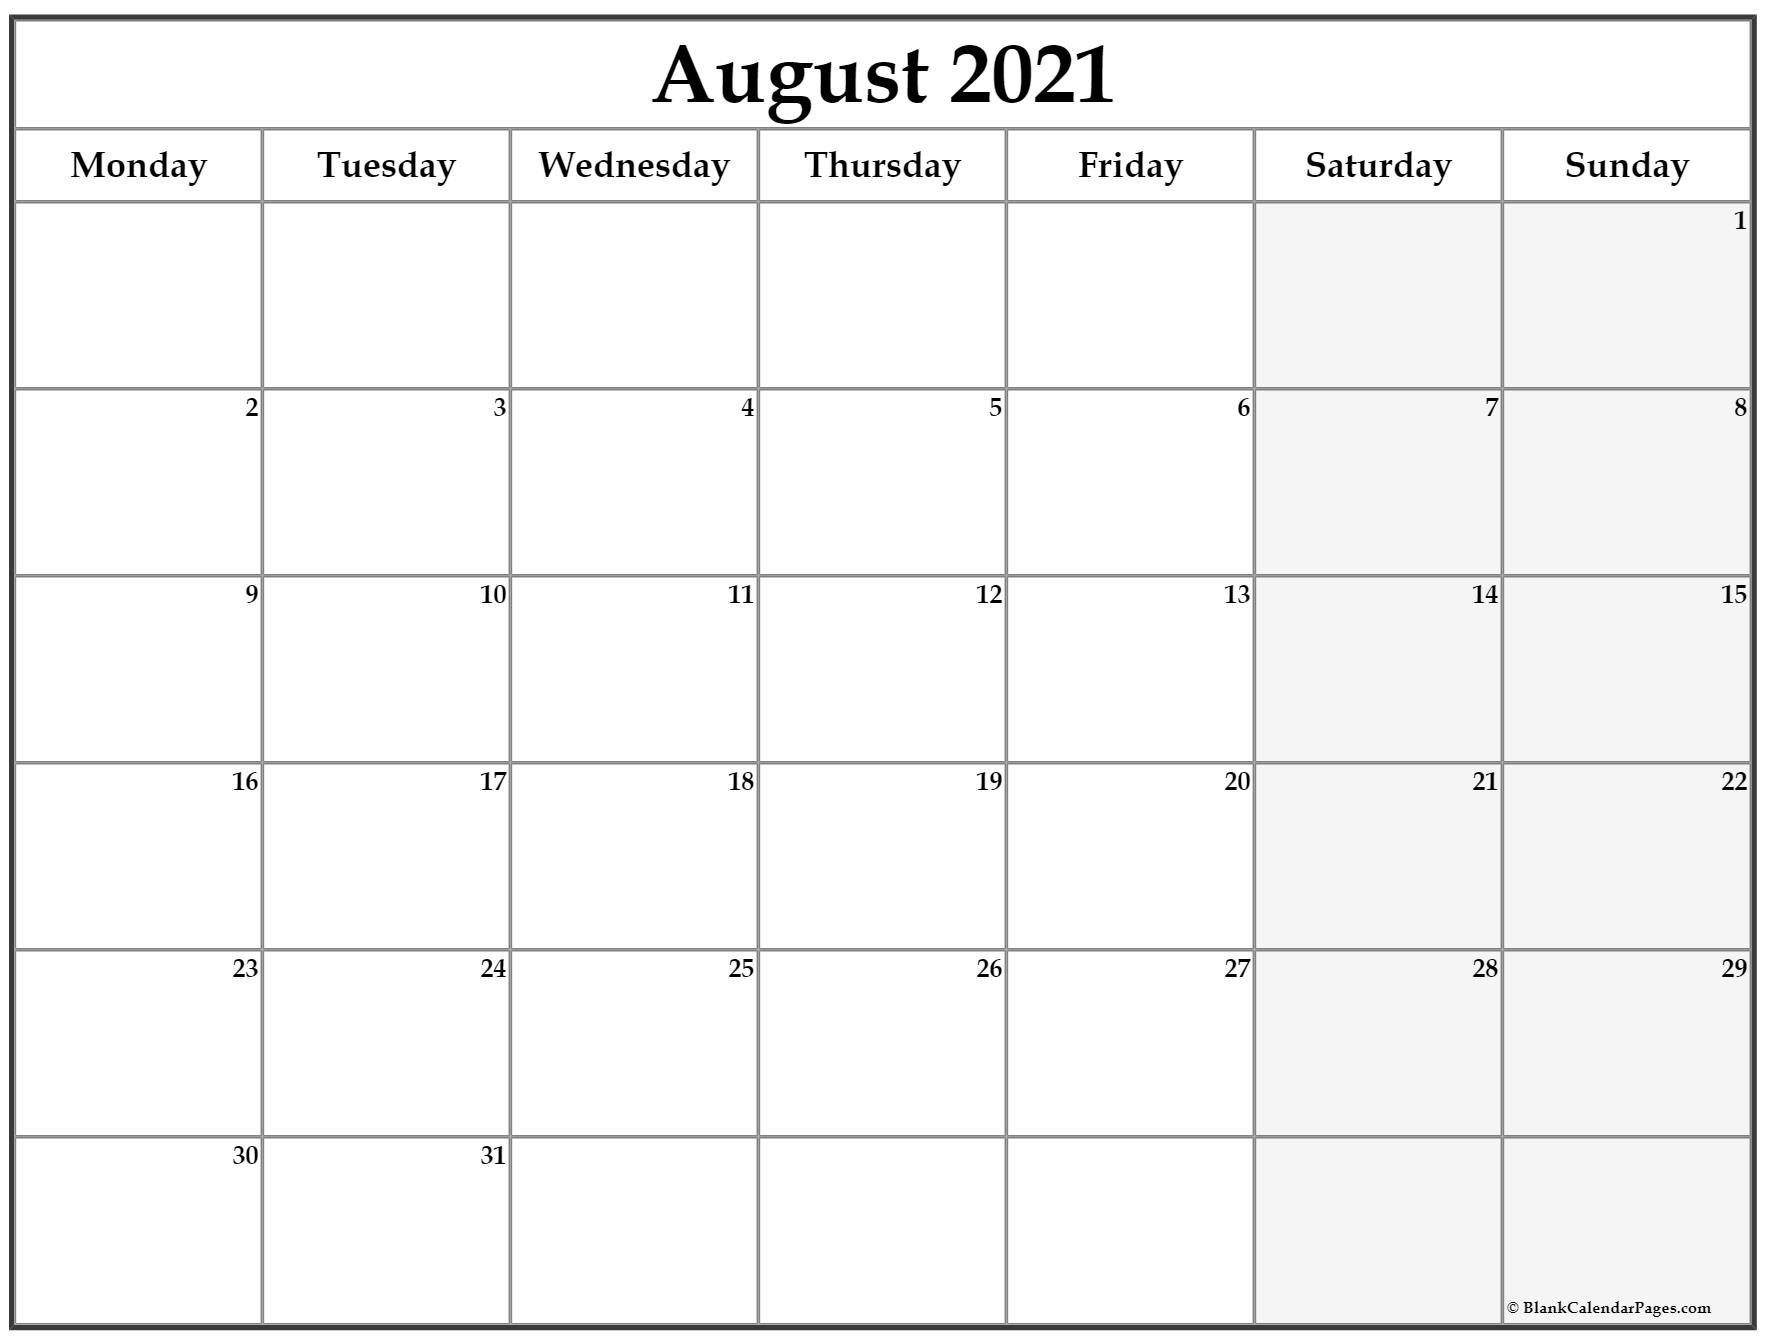 August 2021 Monday Calendar | Monday To Sunday inside Free Calendar Template August 2021